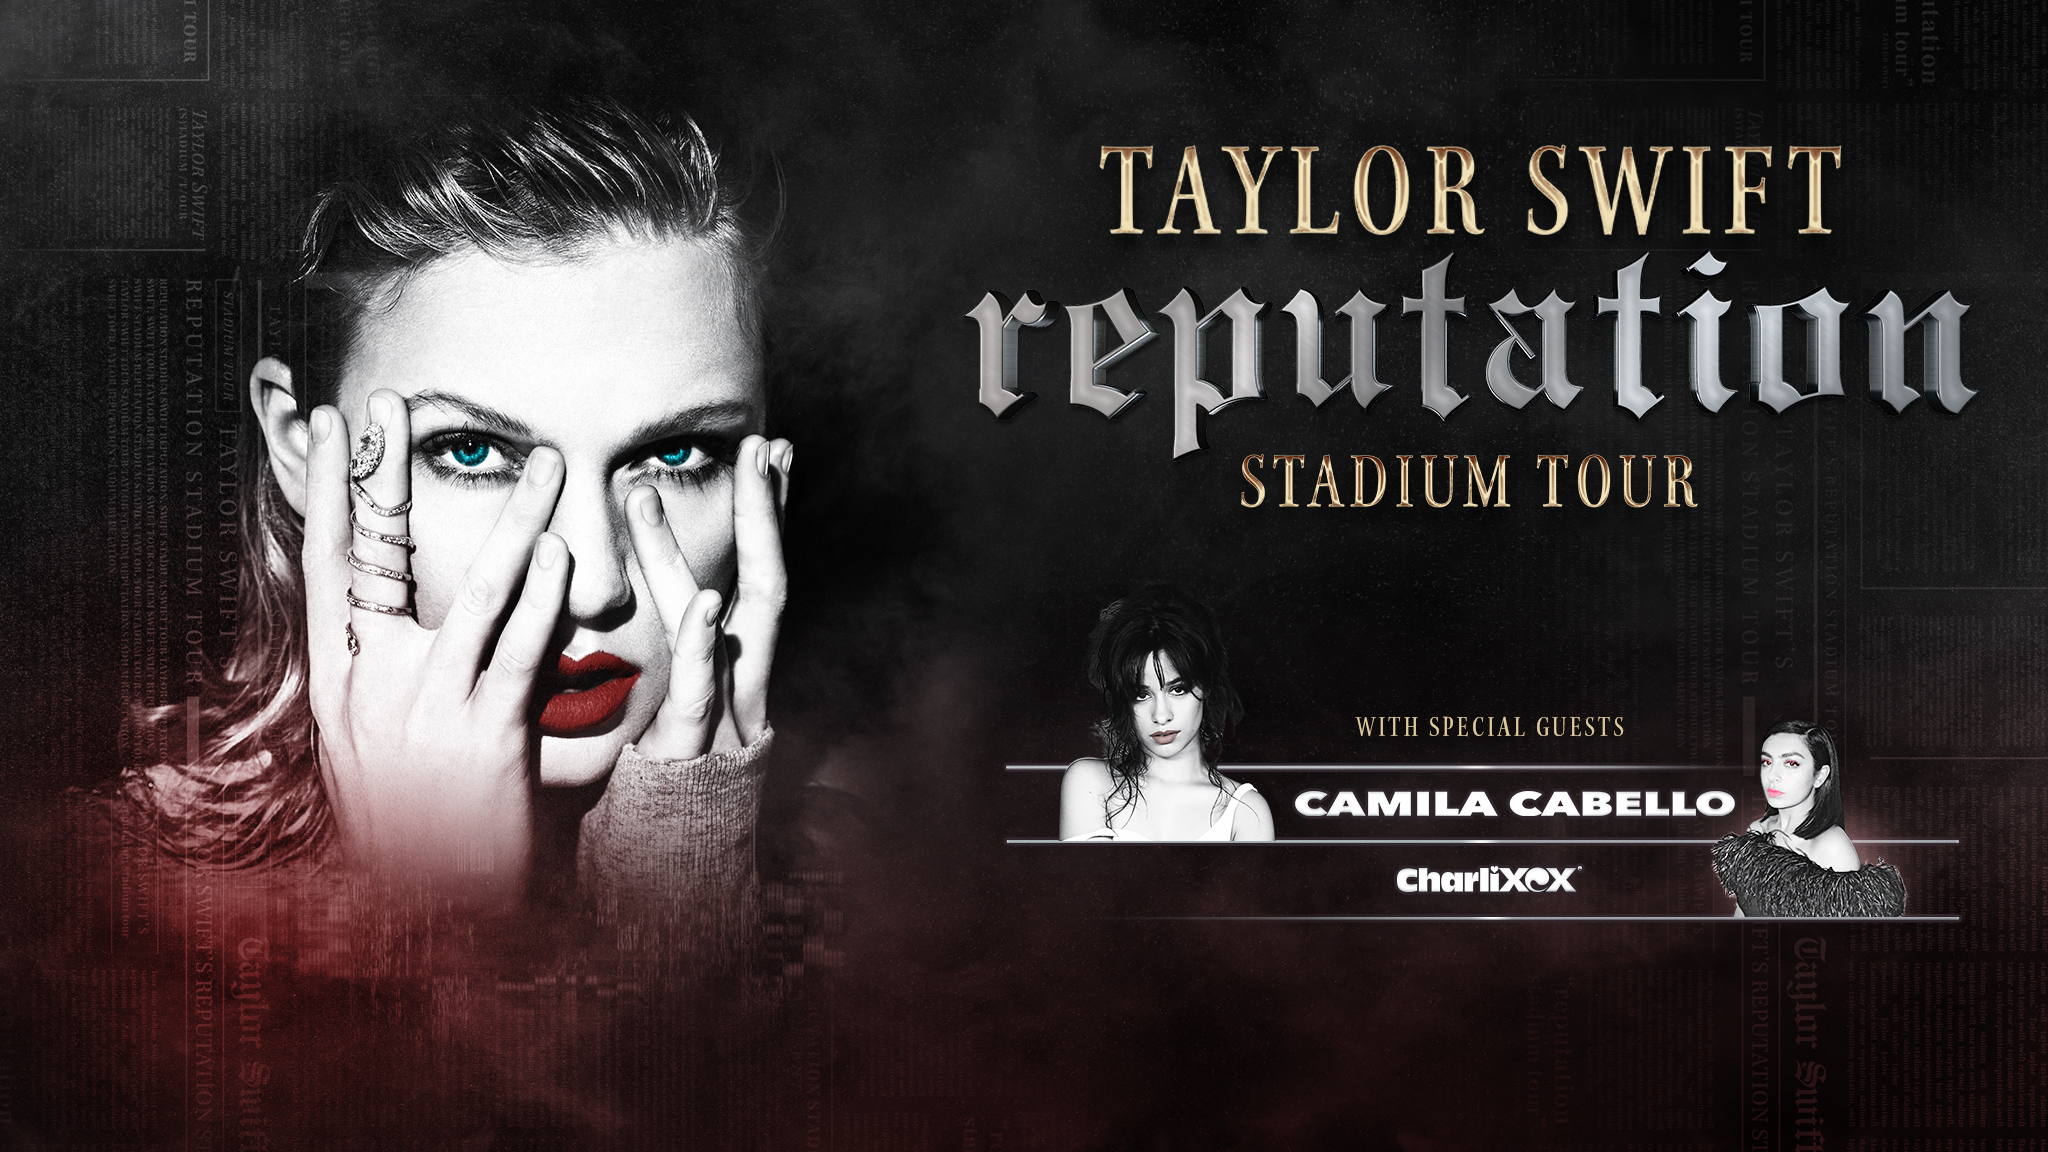 Taylor Swift reputation Stadium Tour - Levi's® Stadium